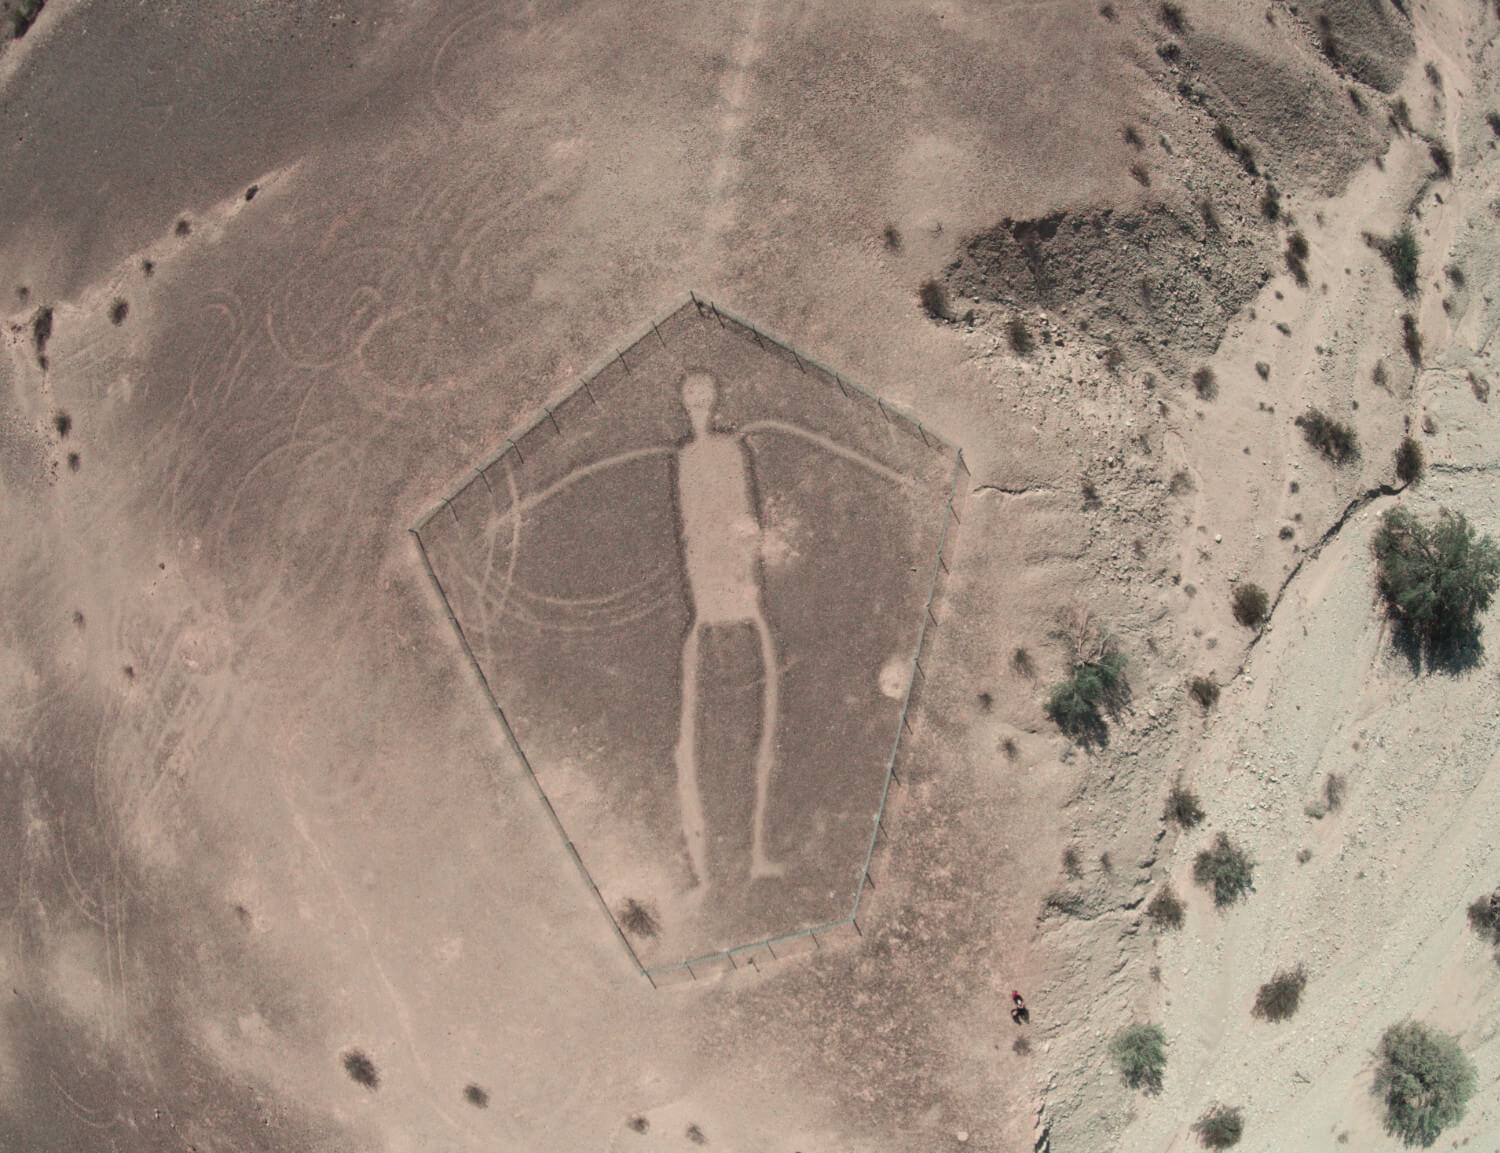 Human figure at the Blythe Intaglio site.  Photo Credit: Rsfinlayson [CC BY-SA 4.0 (https://creativecommons.org/licenses/by-sa/4.0)]